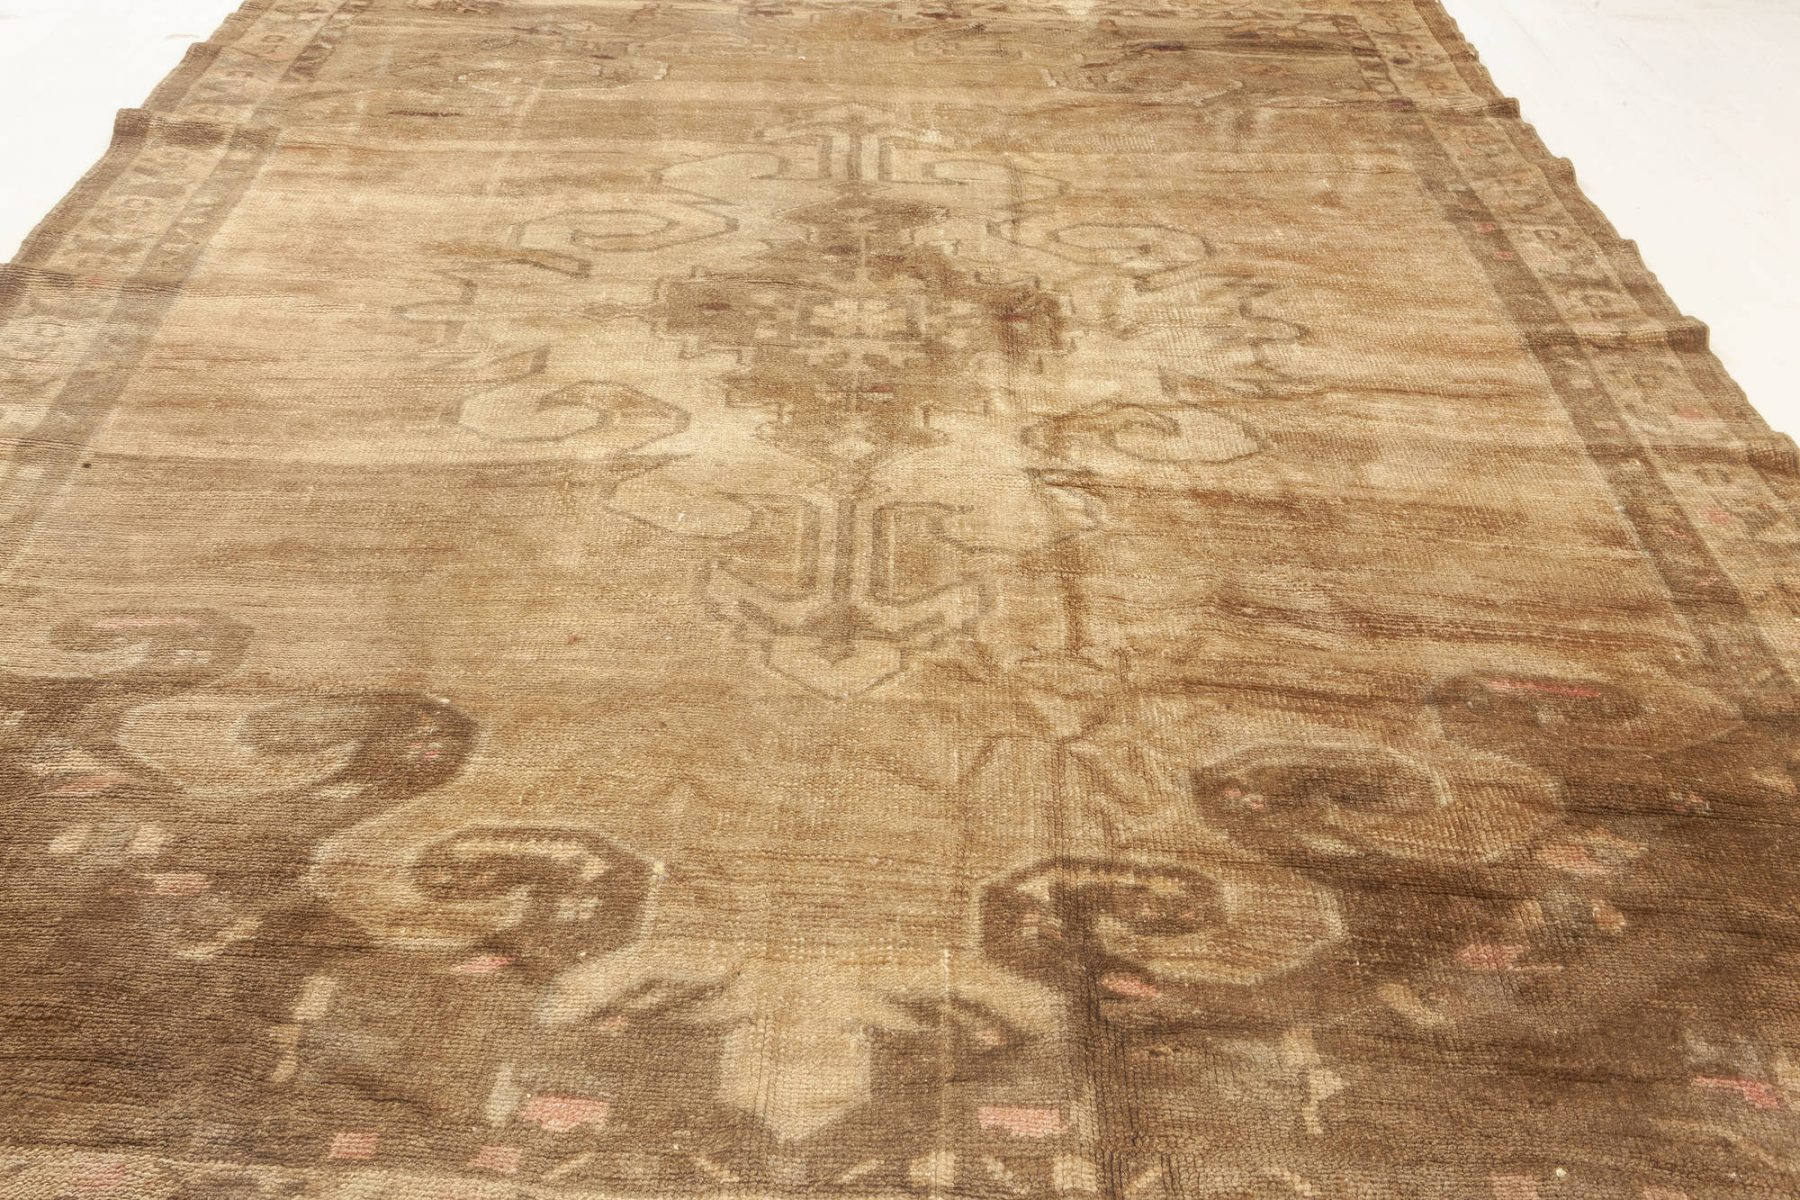 Turkish Hand Knotted Wool Rug in Beige and Brown BB6922